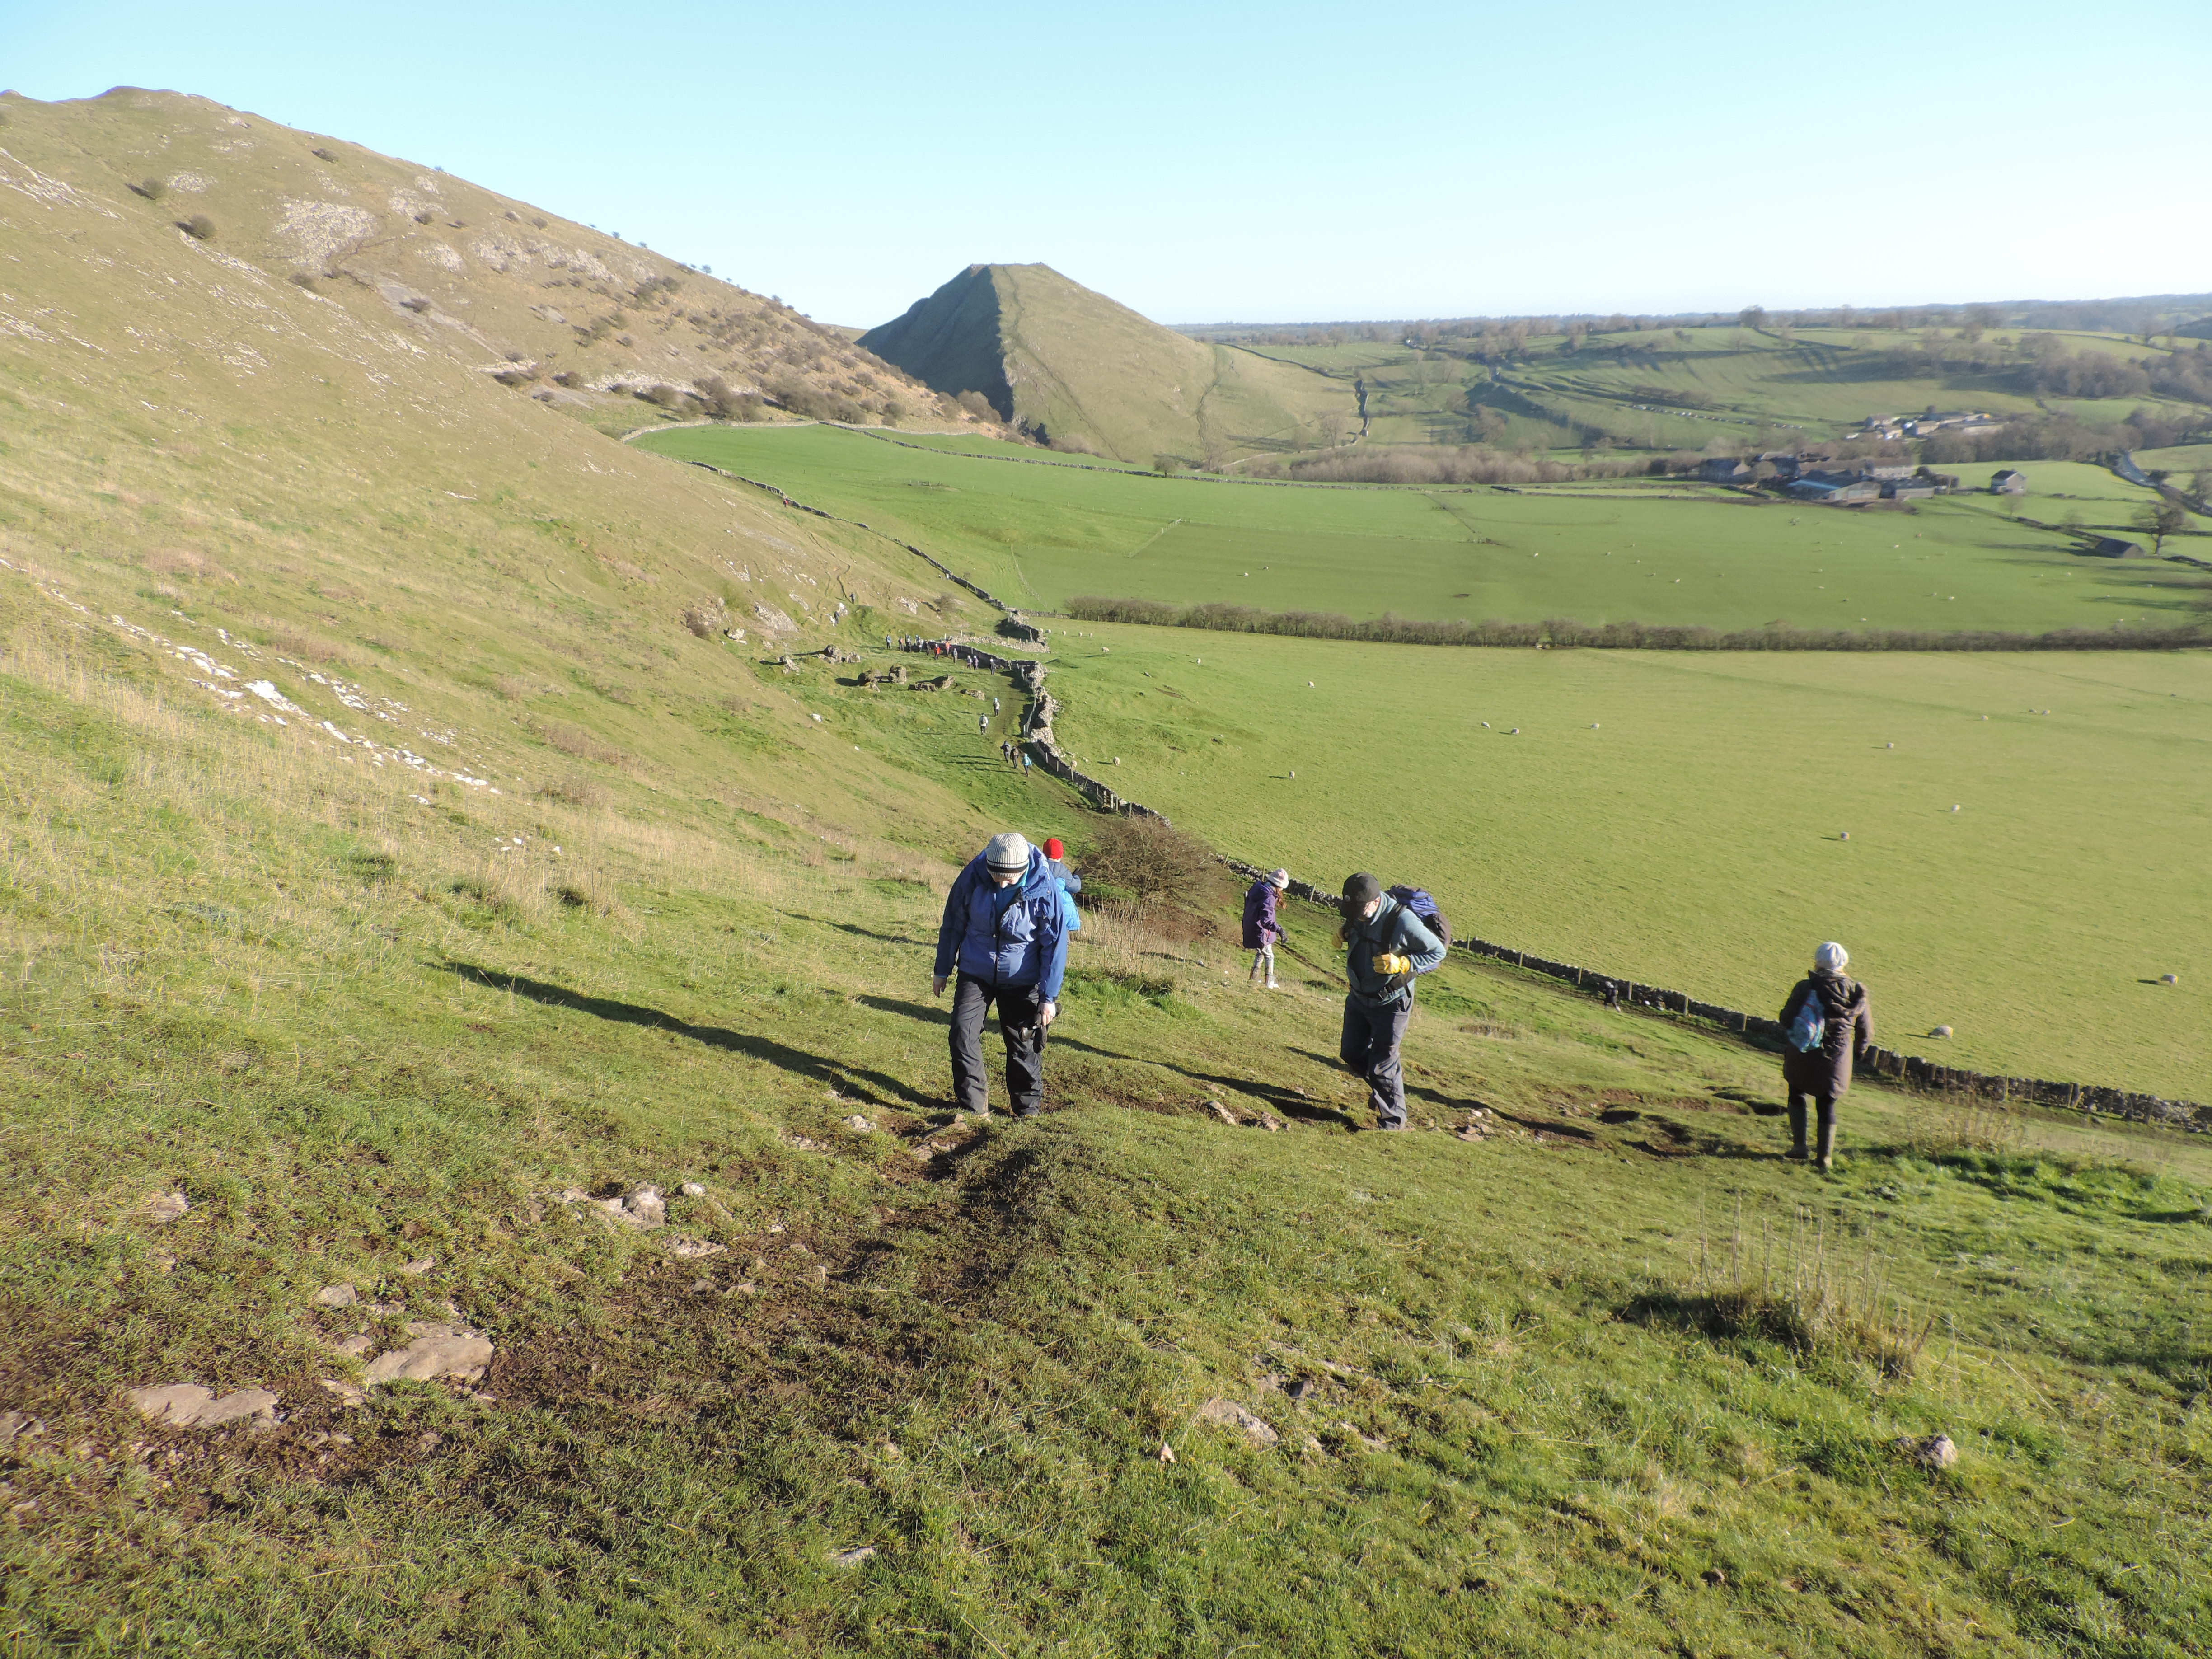 image: approaching Bunster Hill on a Pinnacle walking holiday